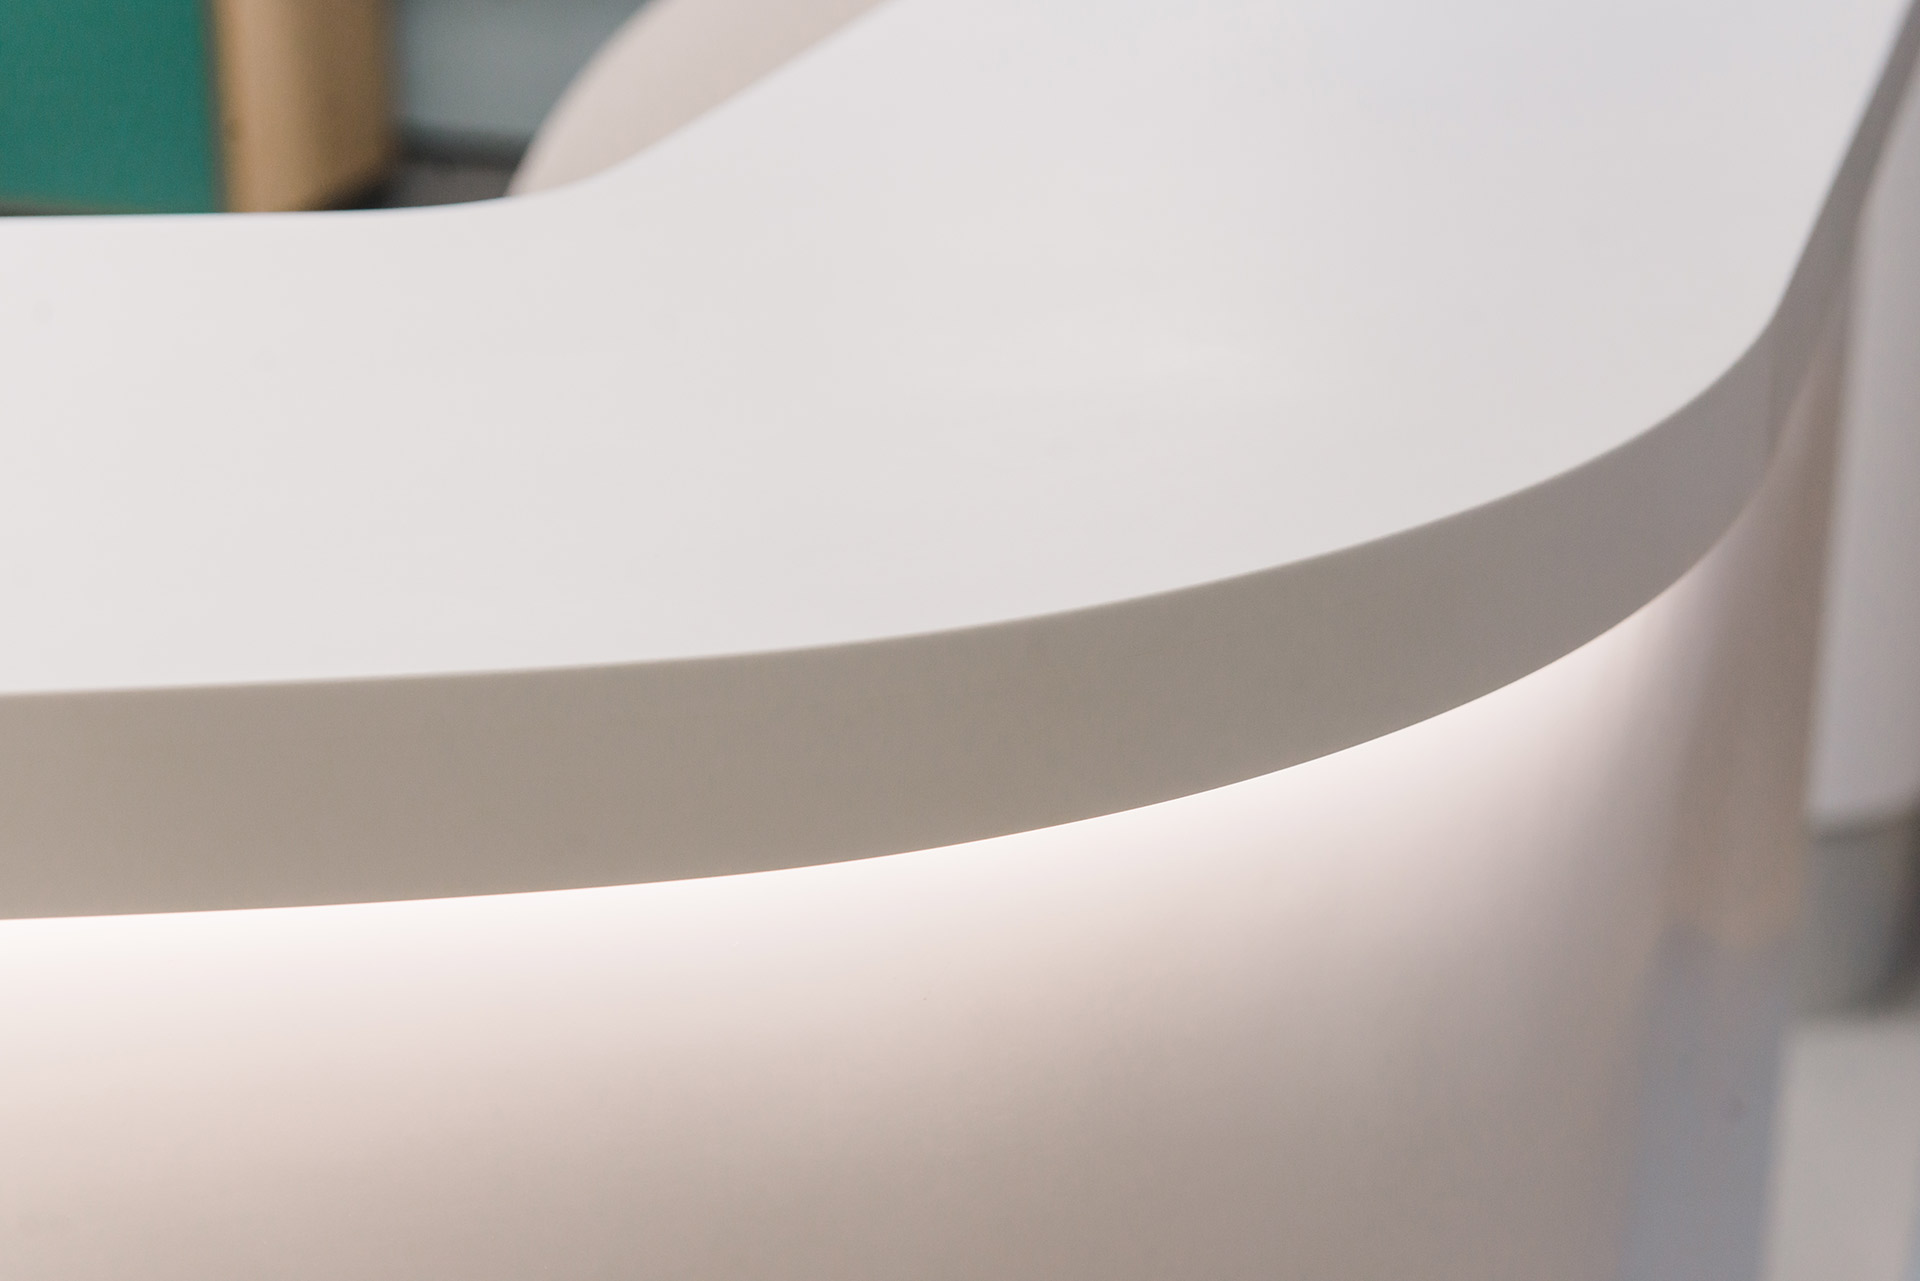 curved corian reception desk detail at Royal Brompton Hospital